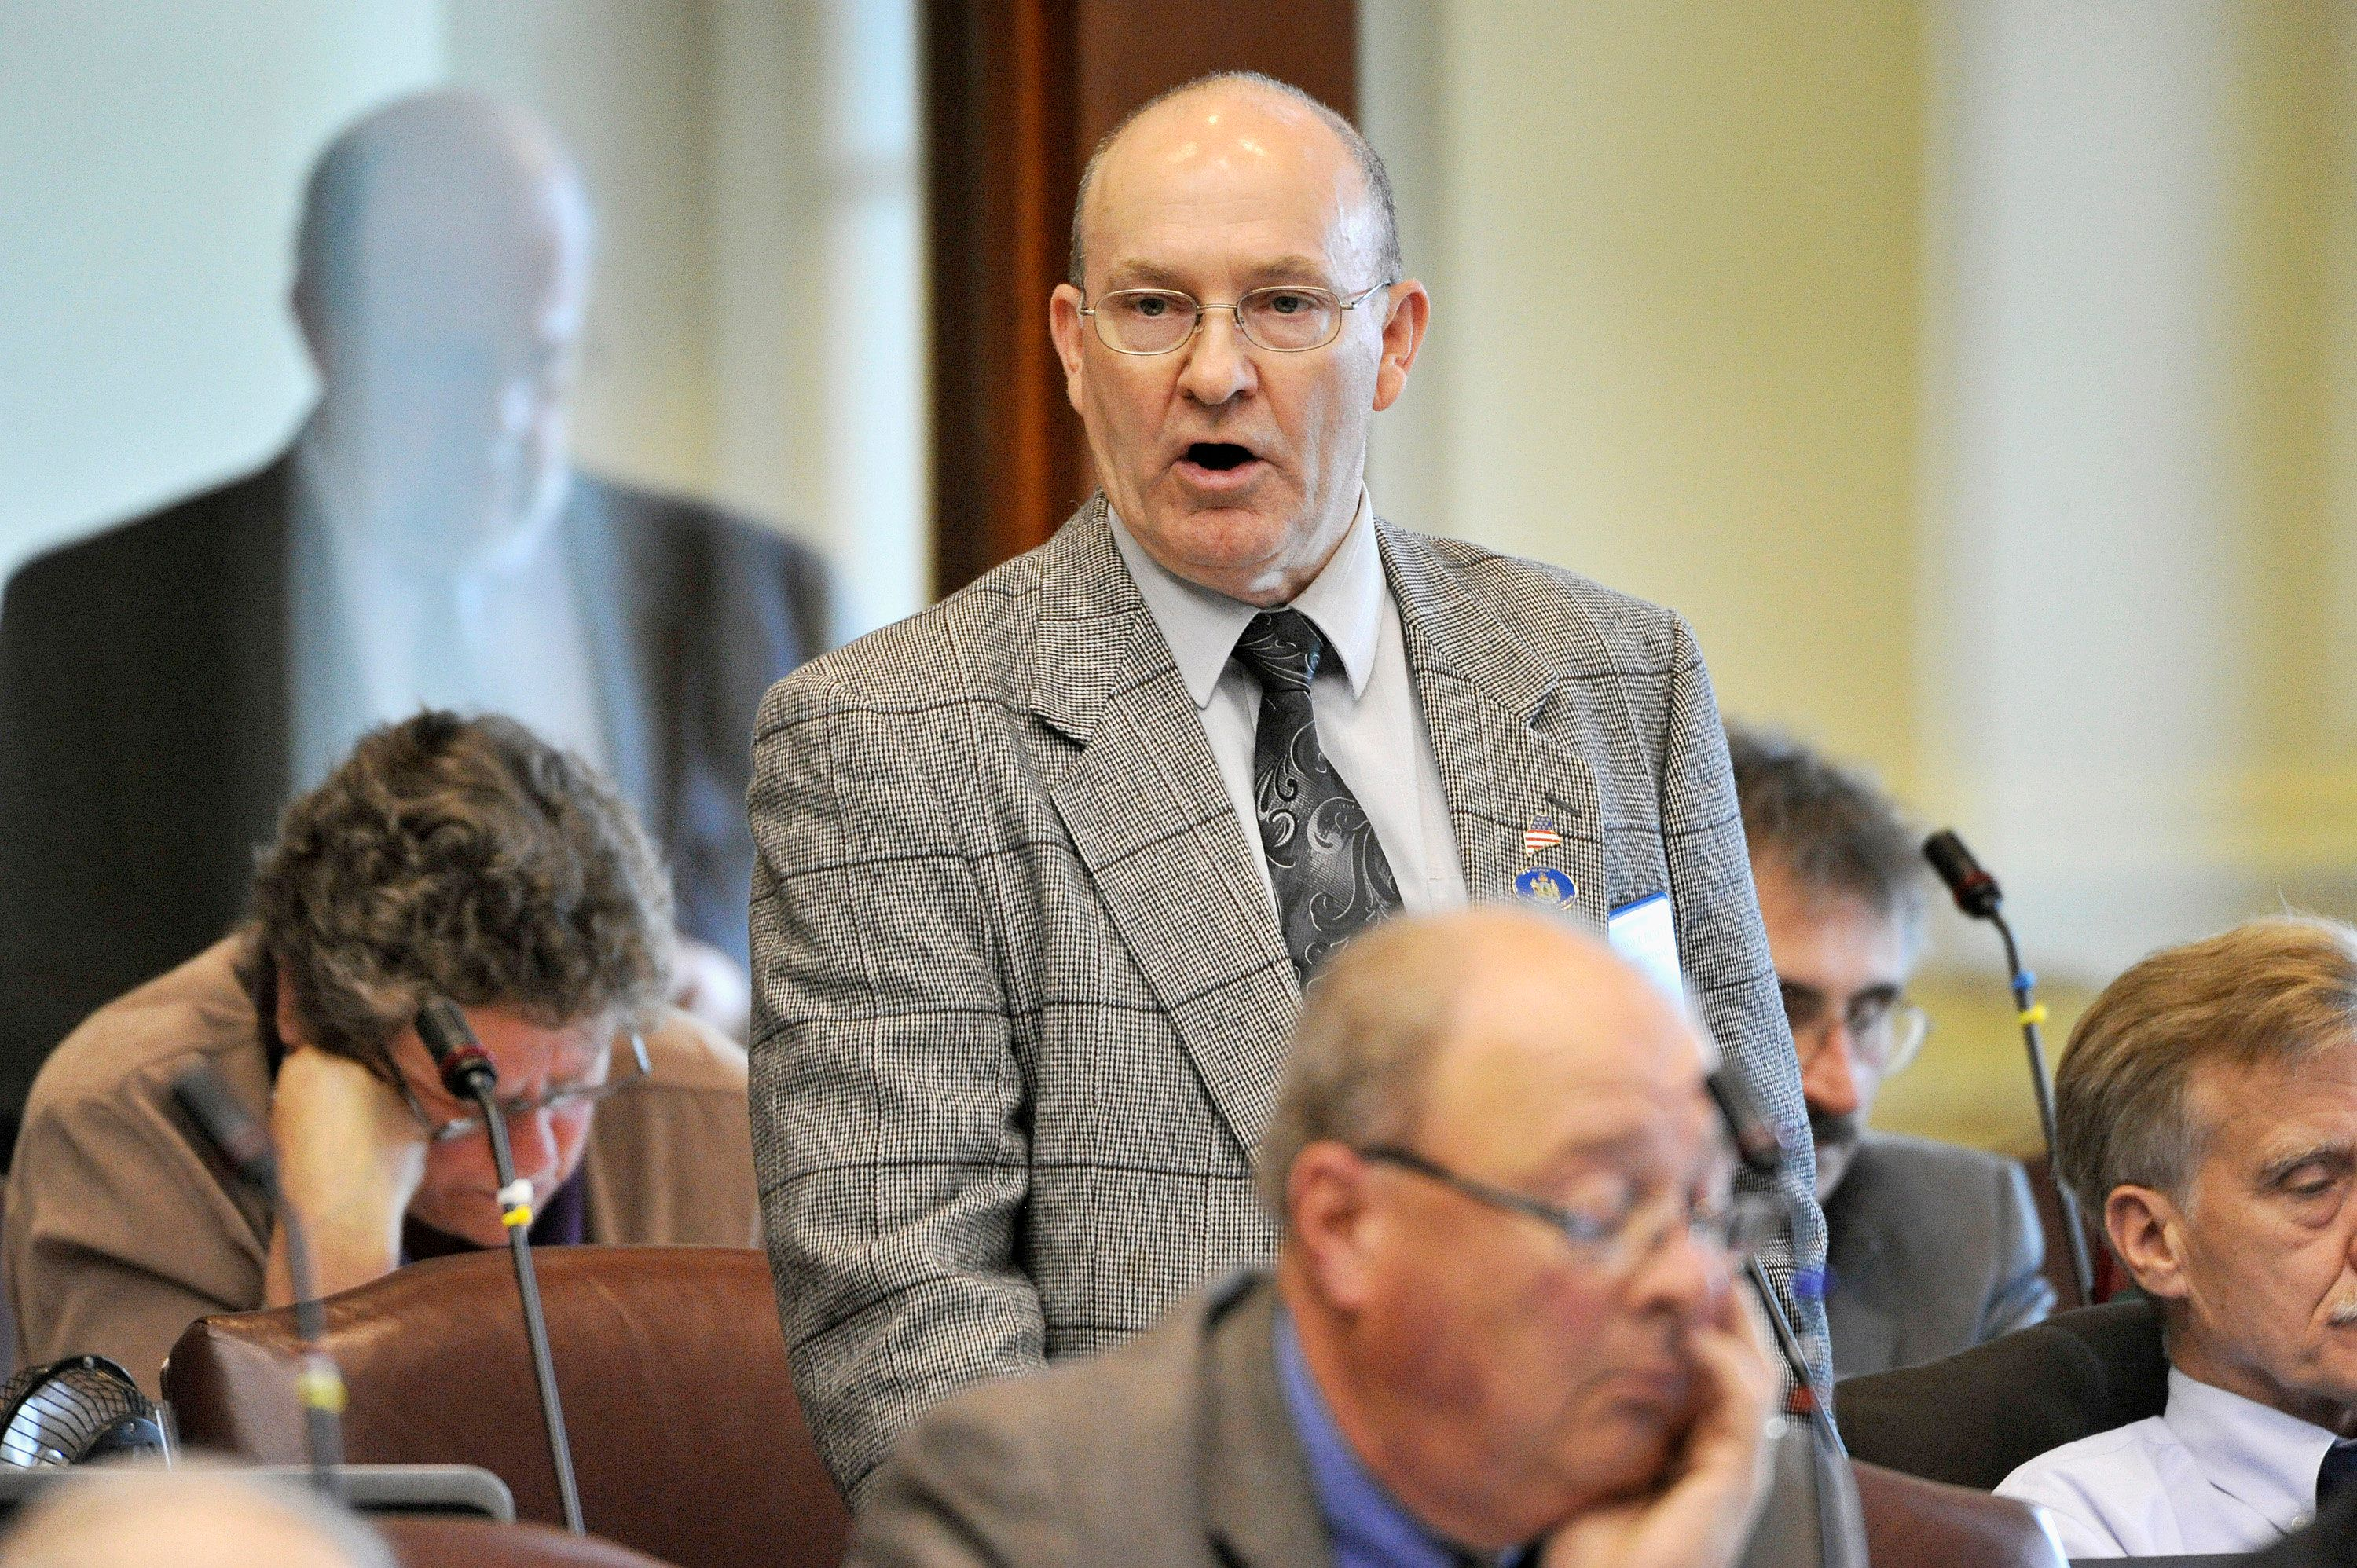 AUGUSTA, ME - JUNE 1, 2015: The Maine House of Representatives discuss a bill before the House which would eliminate the need for a state permit in order to carry a concealed weapon.  Representative Richard Pickett, of Dixfield, spoke in support of the bill which he co-sponsored. (Photo by John Ewing/Portland Press Herald via Getty Images)